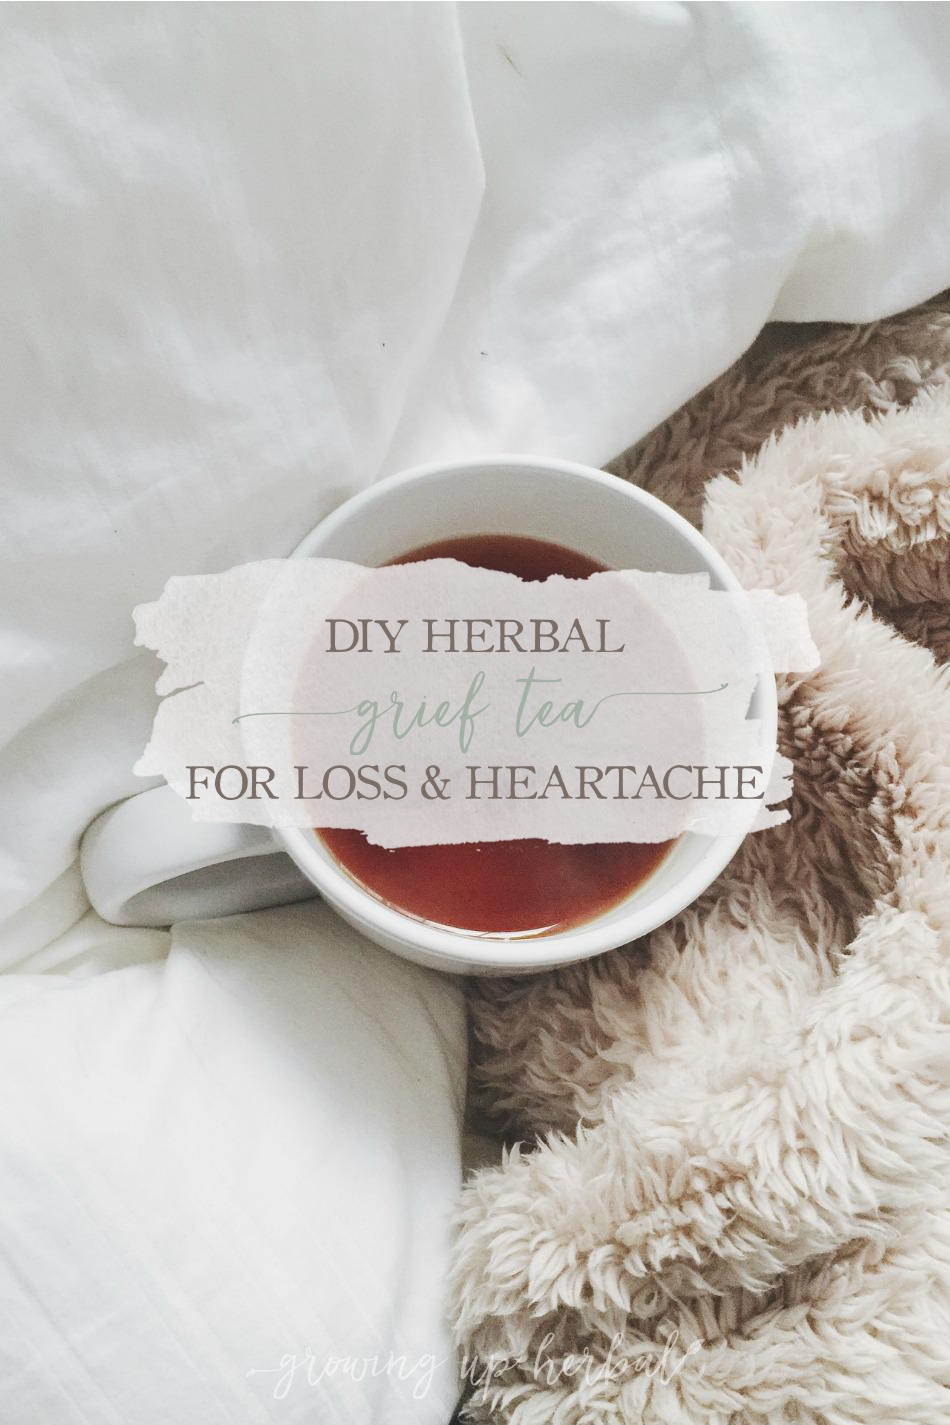 DIY Herbal Grief Tea For Loss & Heartache | Growing Up Herbal | Here's a recipe for a DIY herbal grief tea to support you or a loved one through loss and heartache.